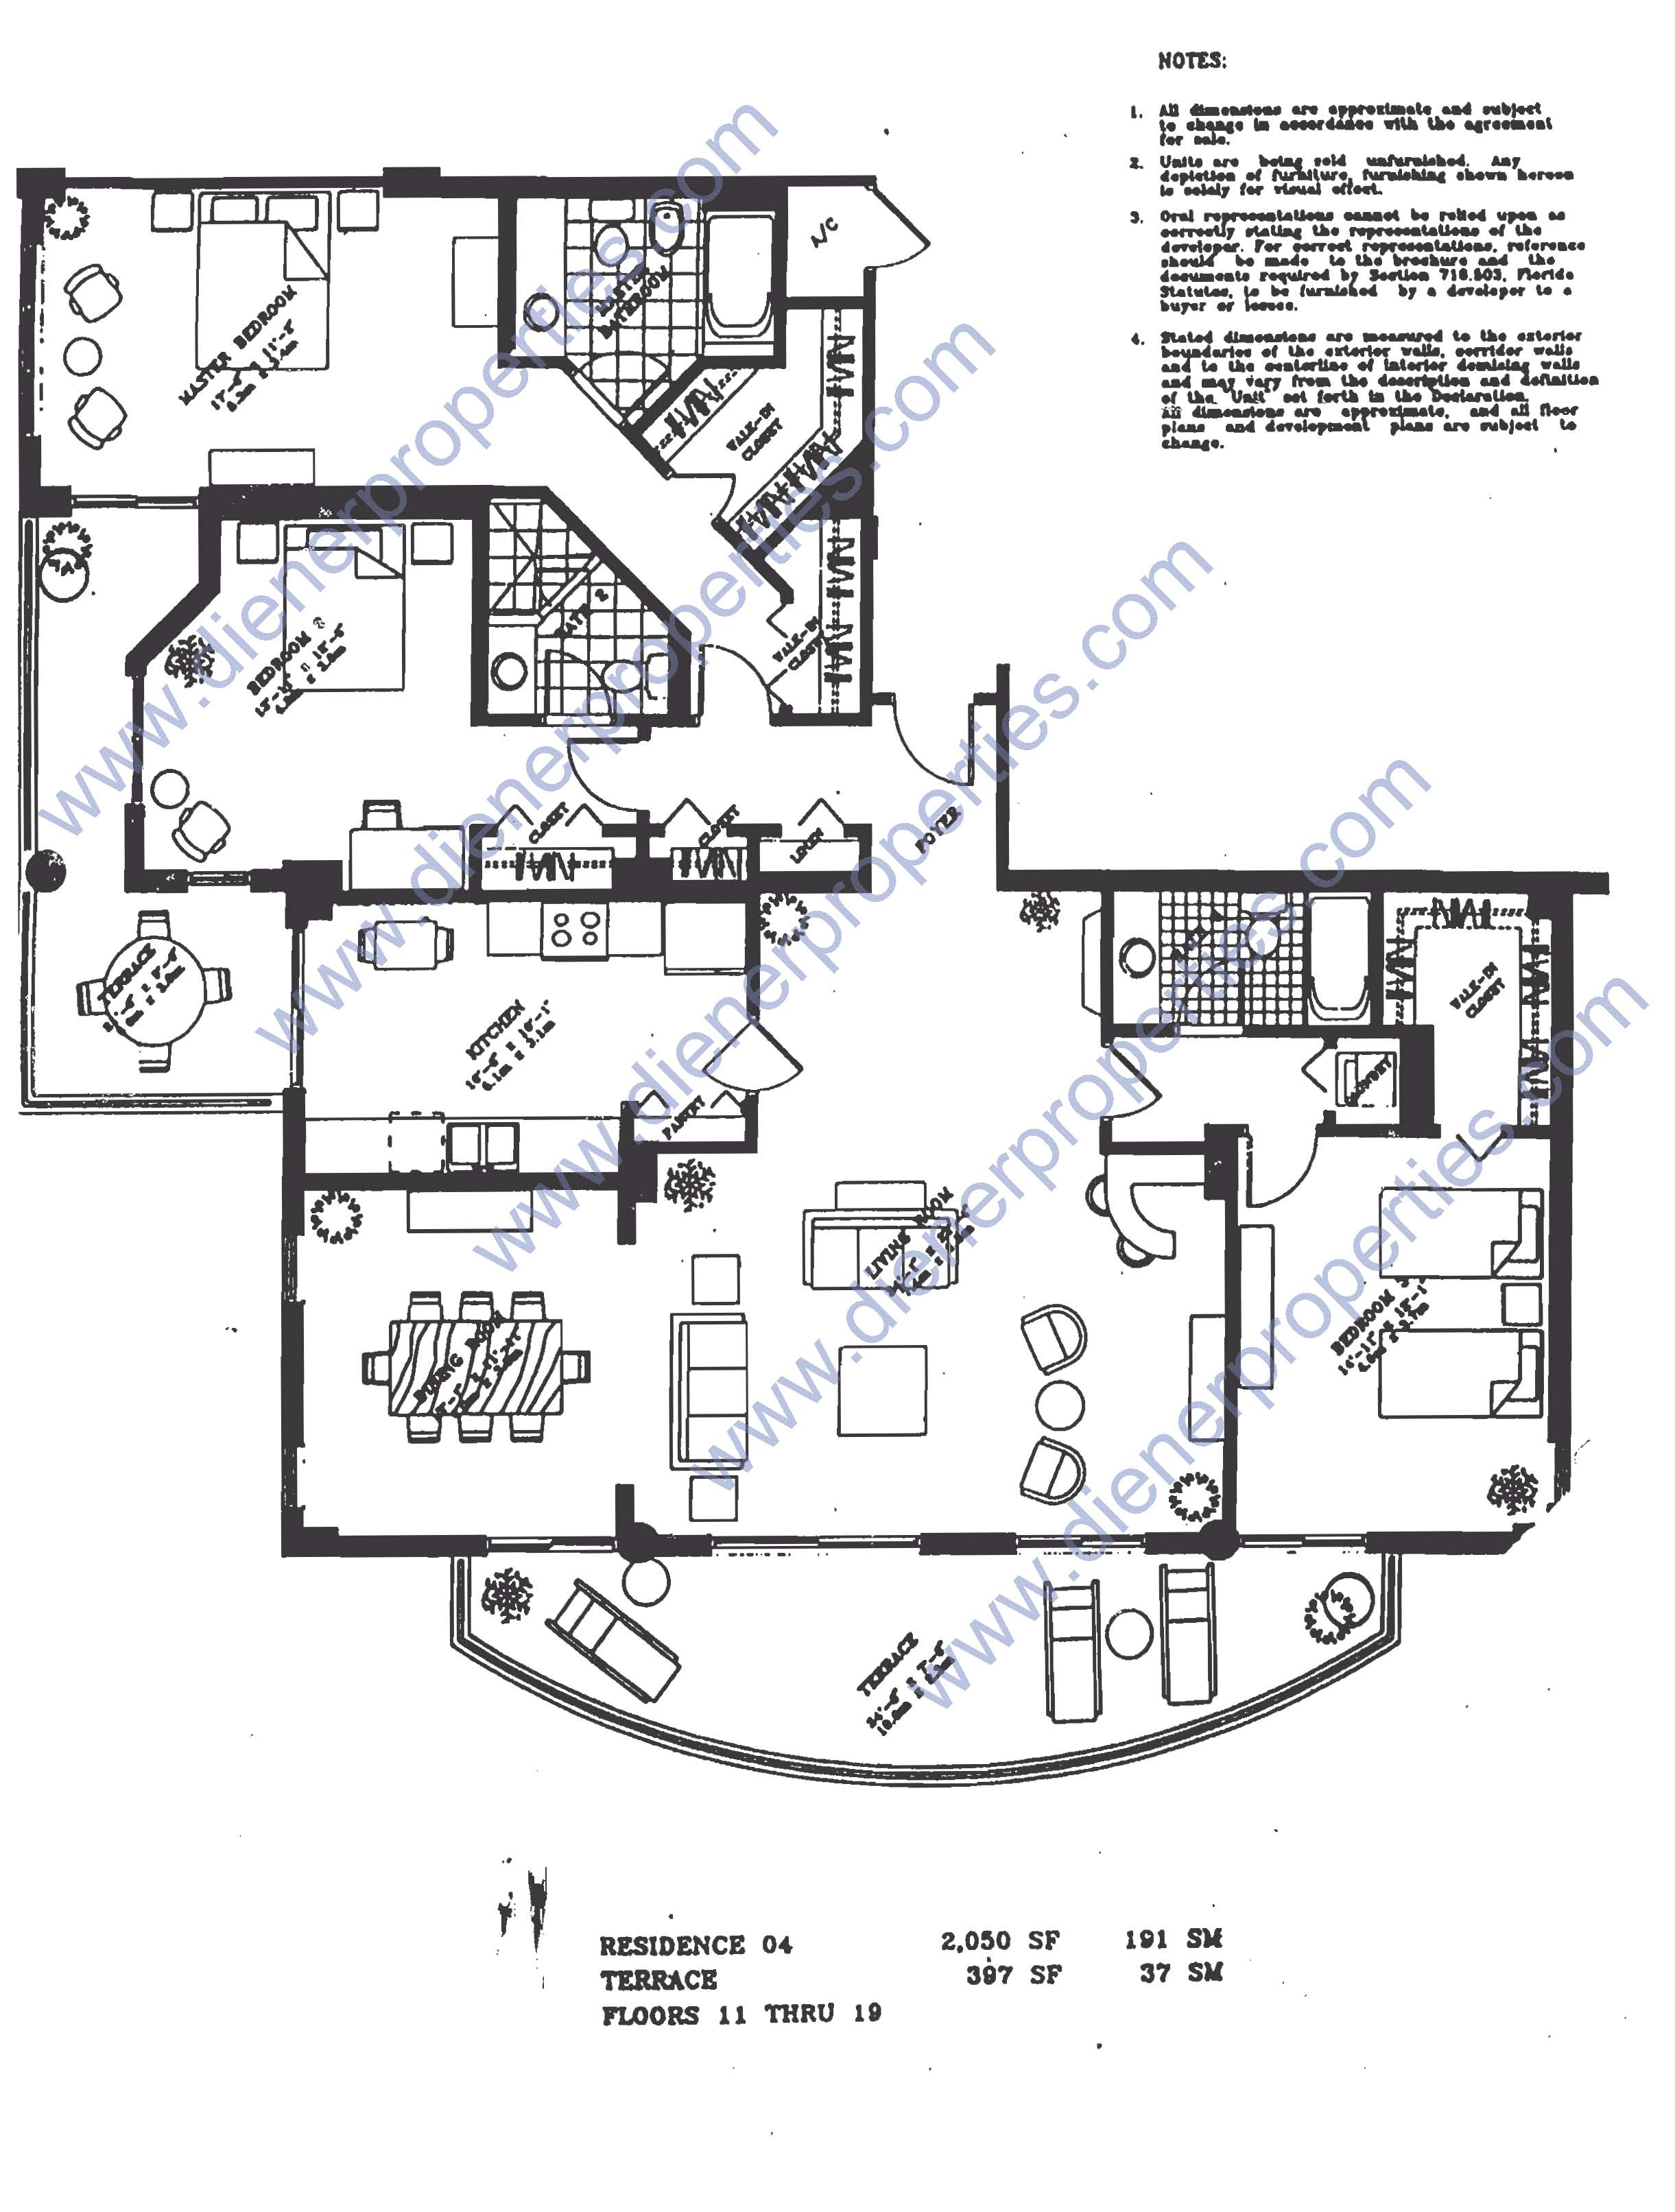 Brickell key one floor plans key home plans ideas picture for 1050 brickell floor plans